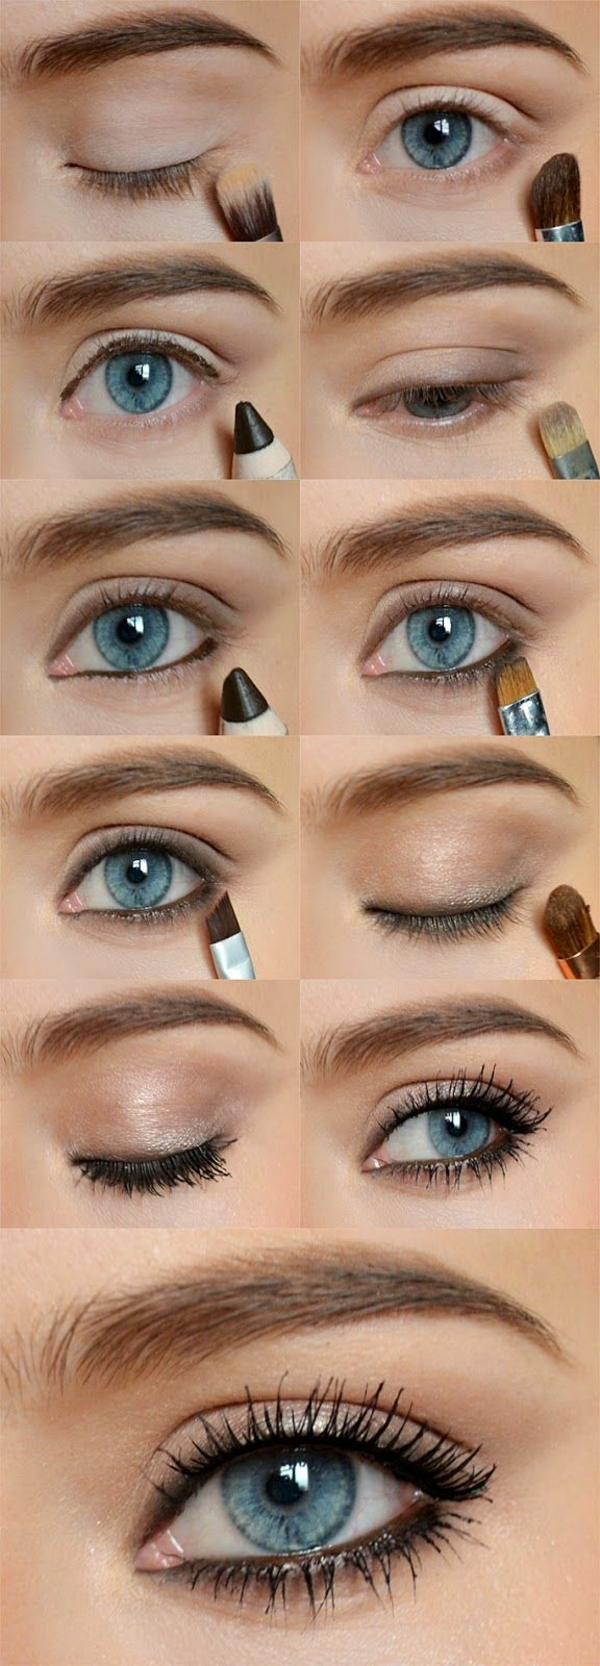 Eye Make Up Steg för steg ögon smink smink tips